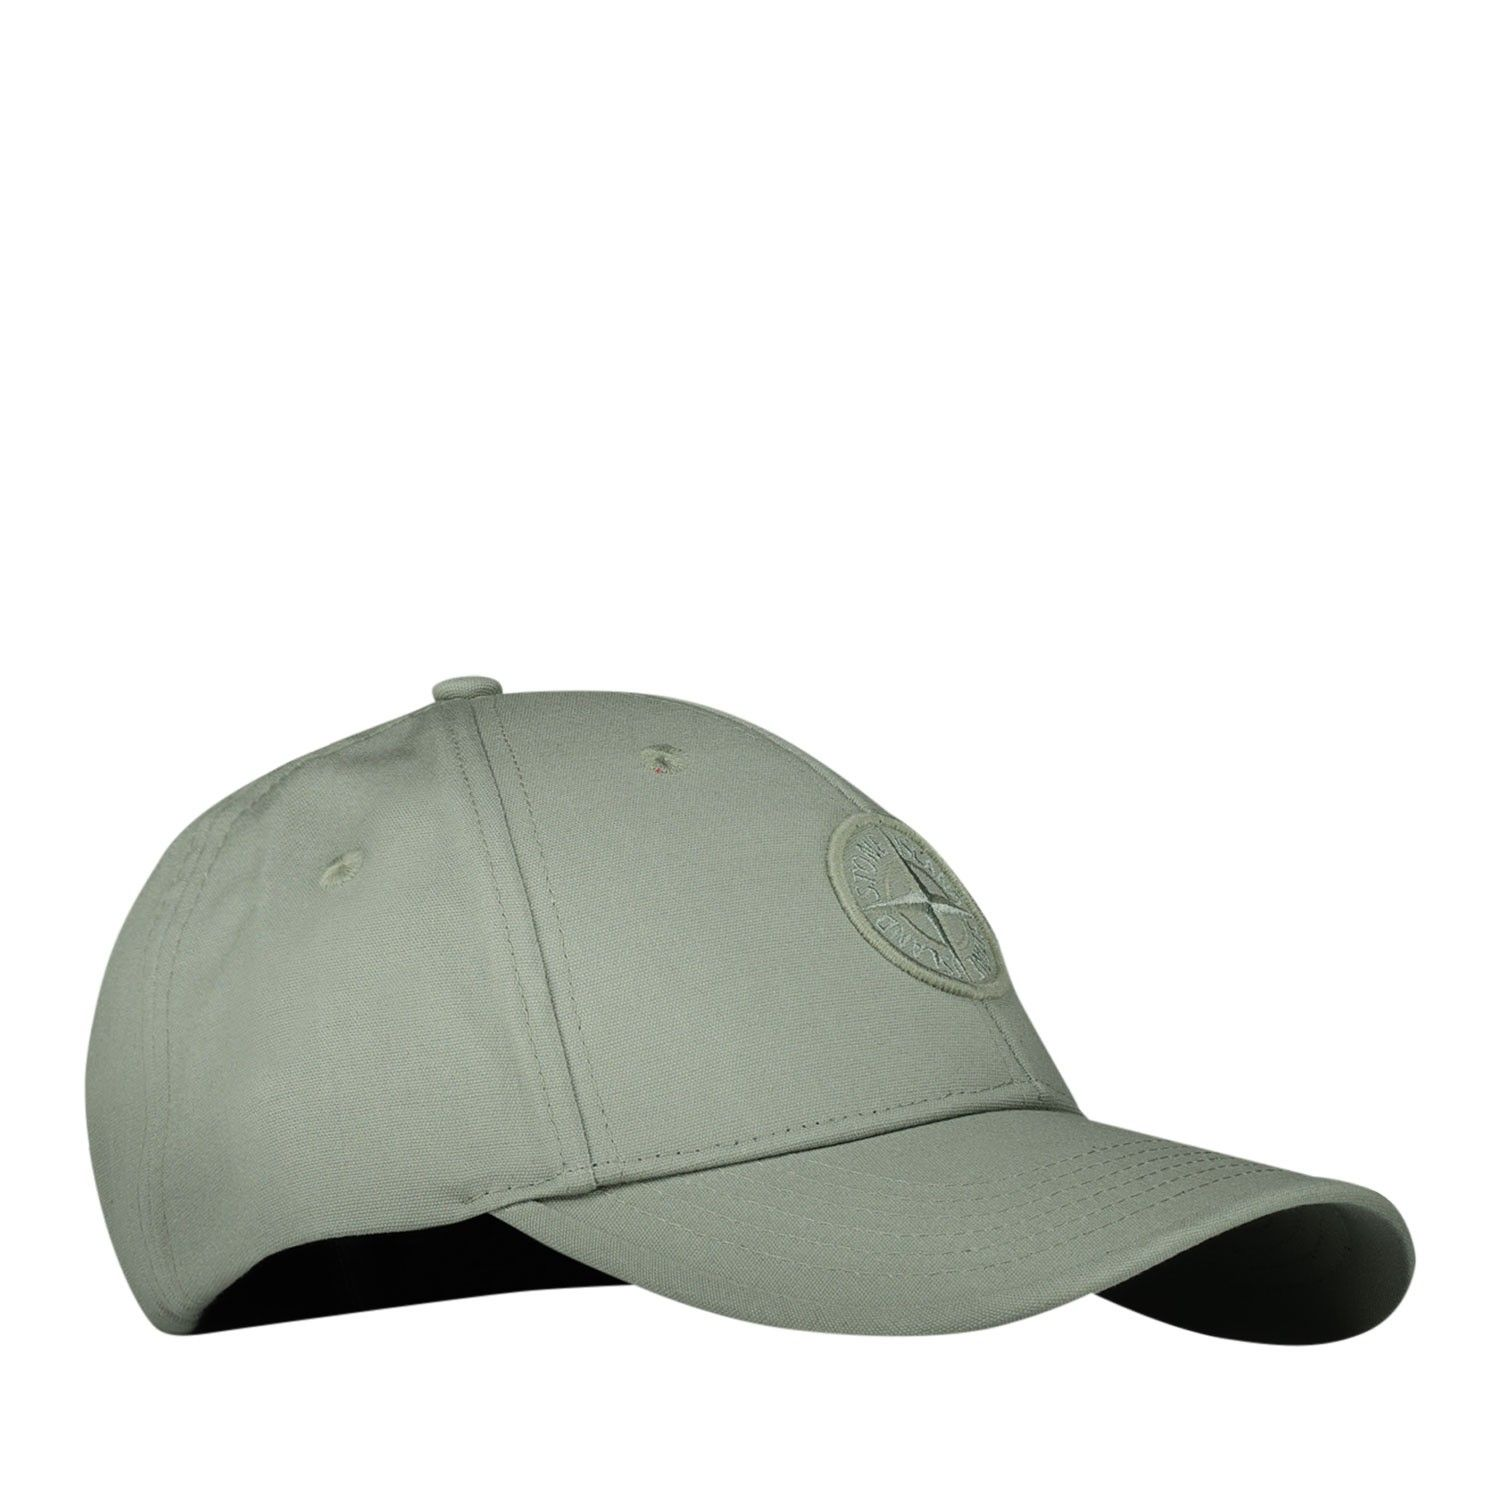 Picture of Stone Island 101691265 kids cap olive green